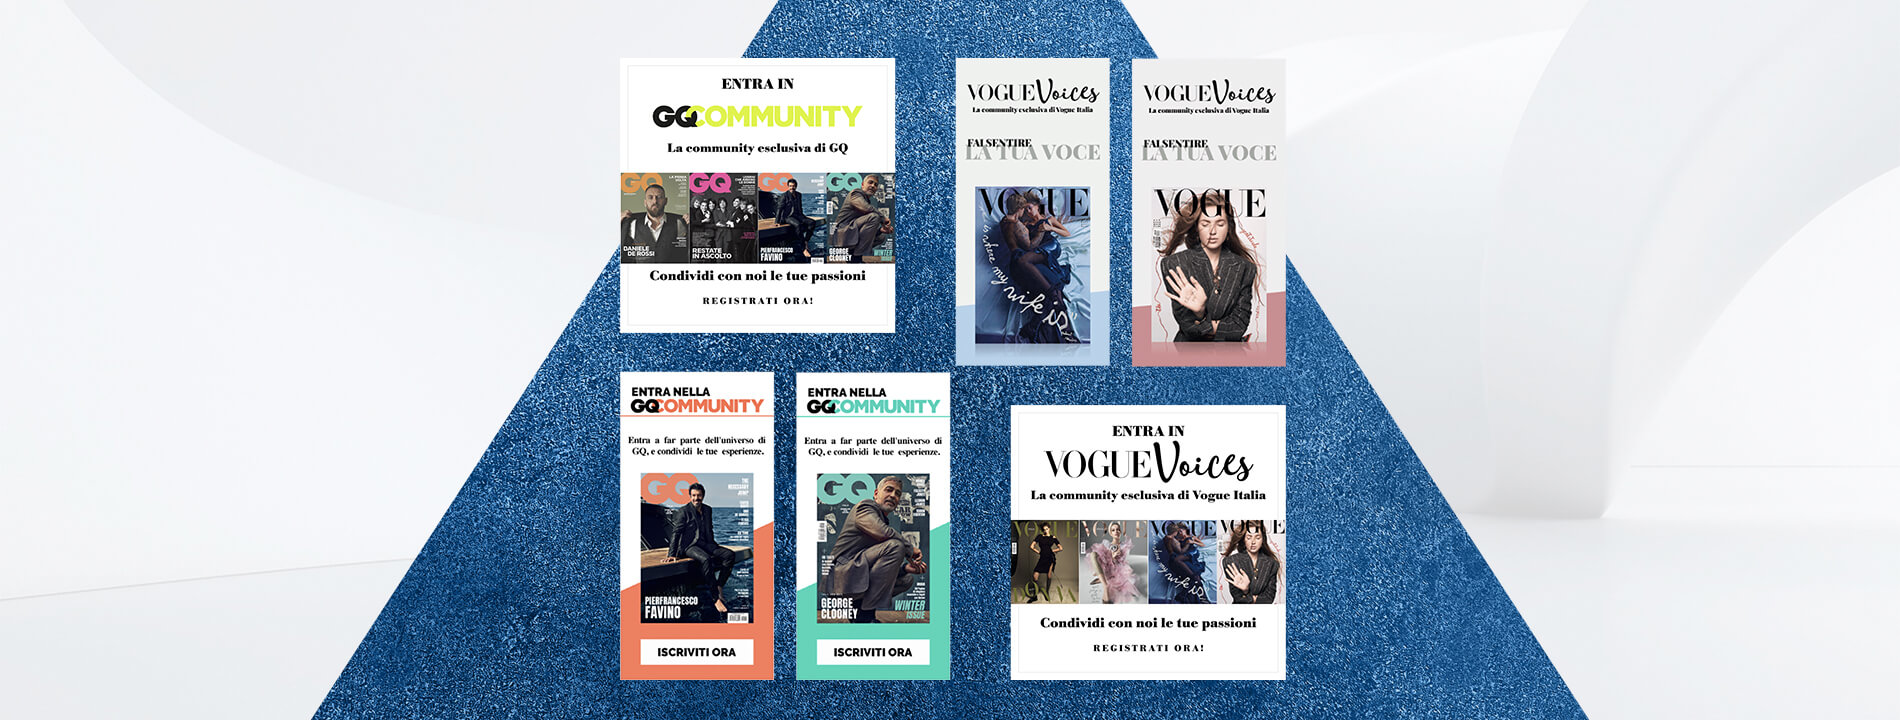 Arachno Digital Agency - Portfolio - Vogue Voices / GQ Community